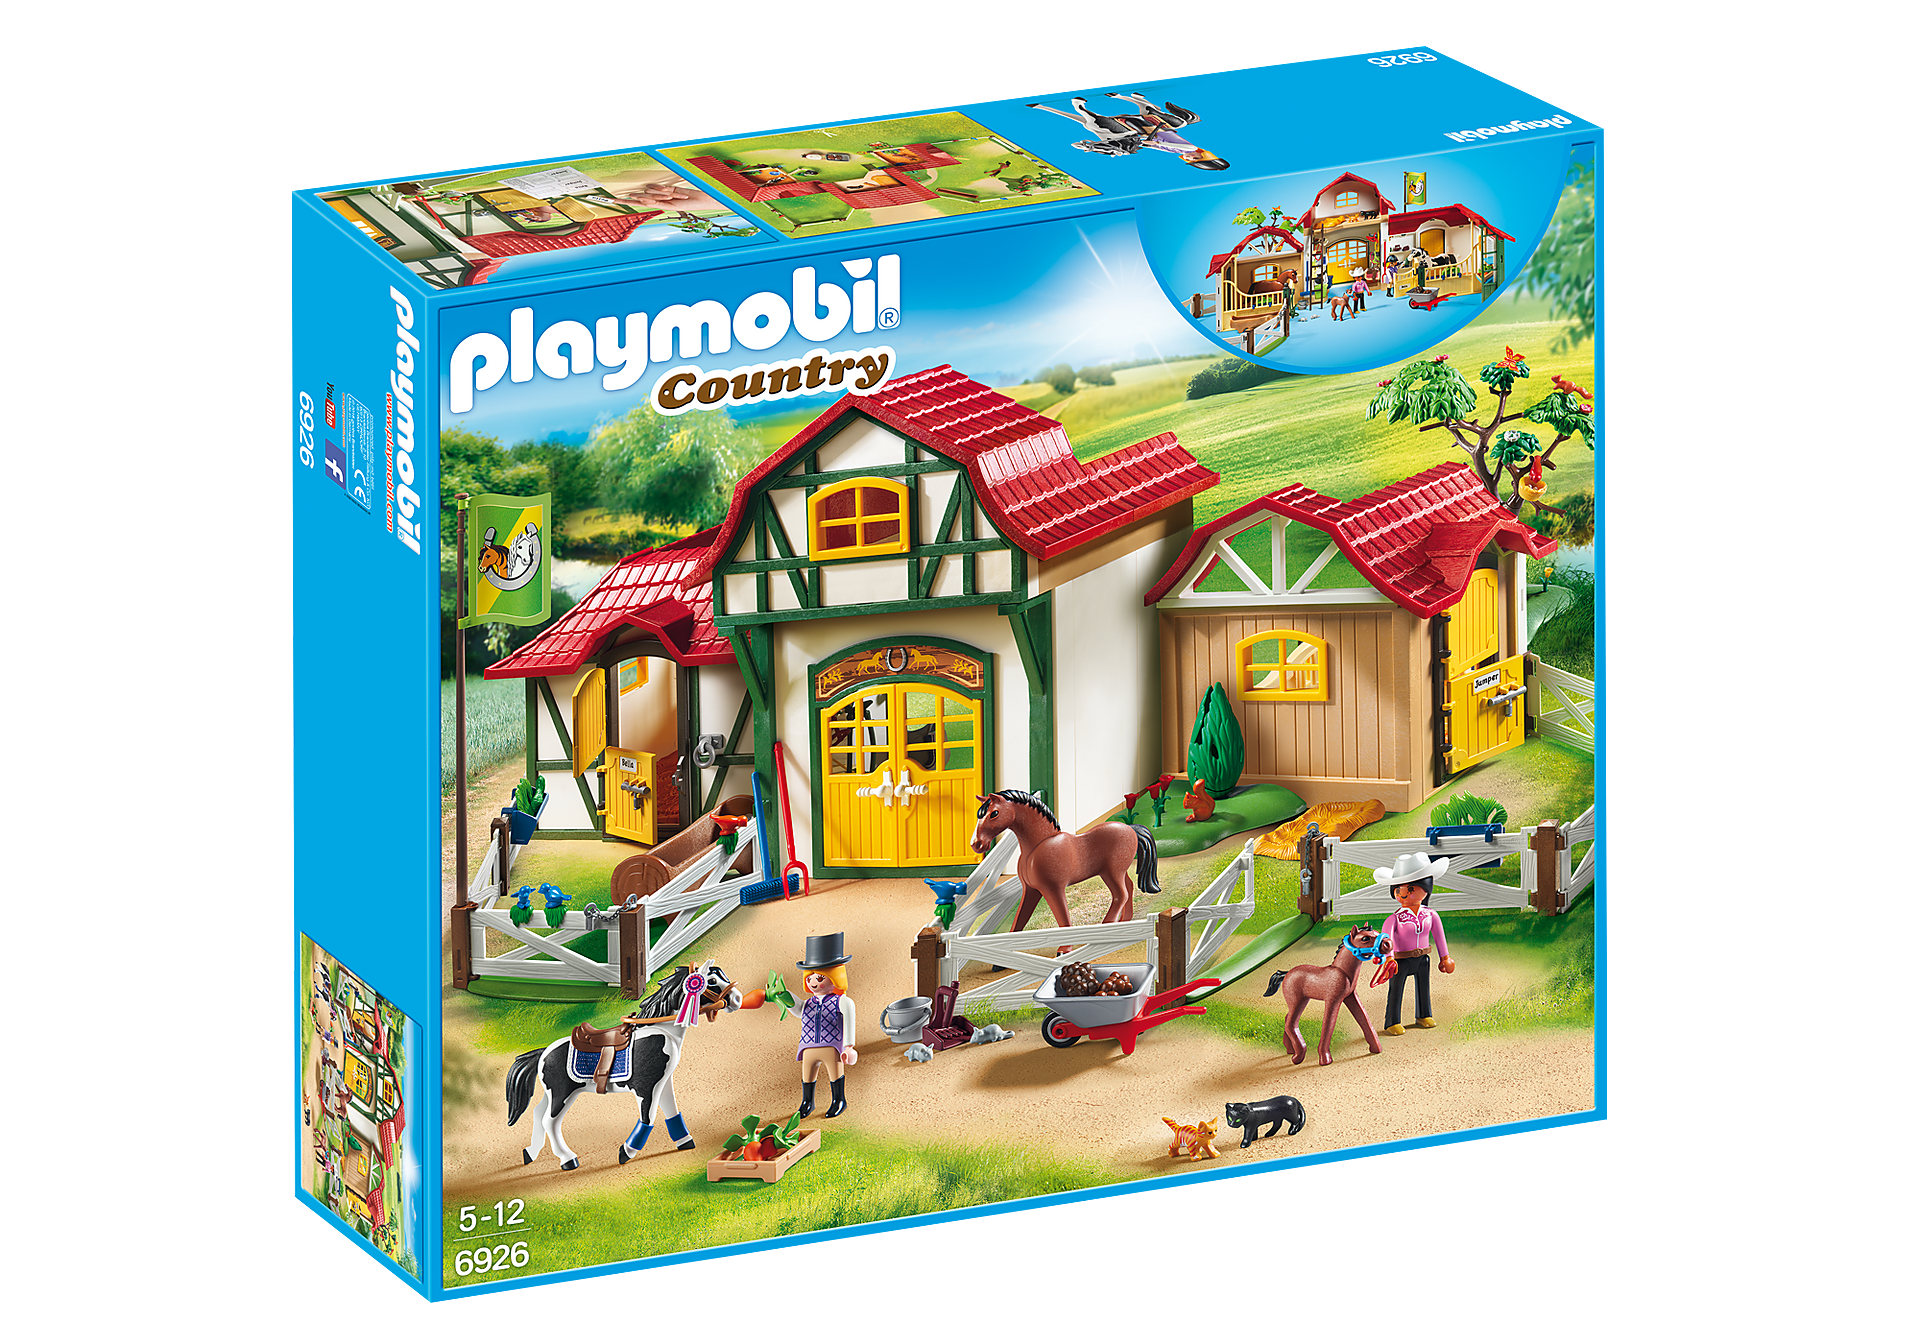 http://media.playmobil.com/i/playmobil/6926_product_box_front/Großer Reiterhof